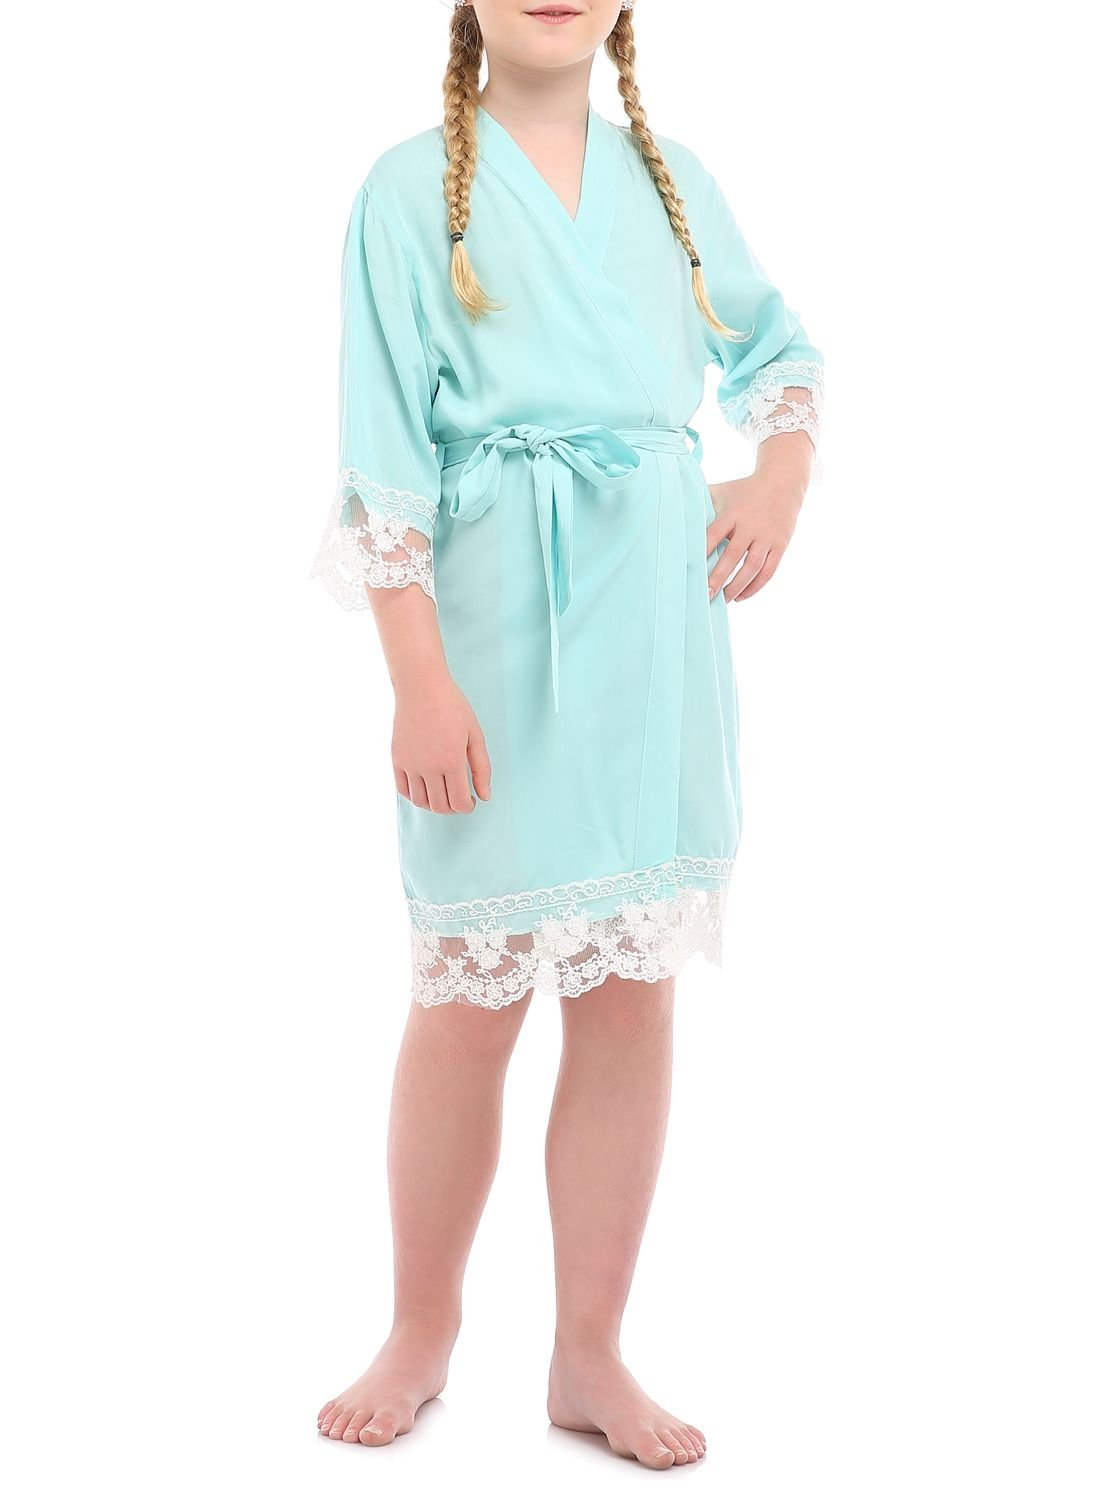 Girl's Junior Bridesmaid Rayon Cotton Lace Robe for Wedding Gift(12,Mint)